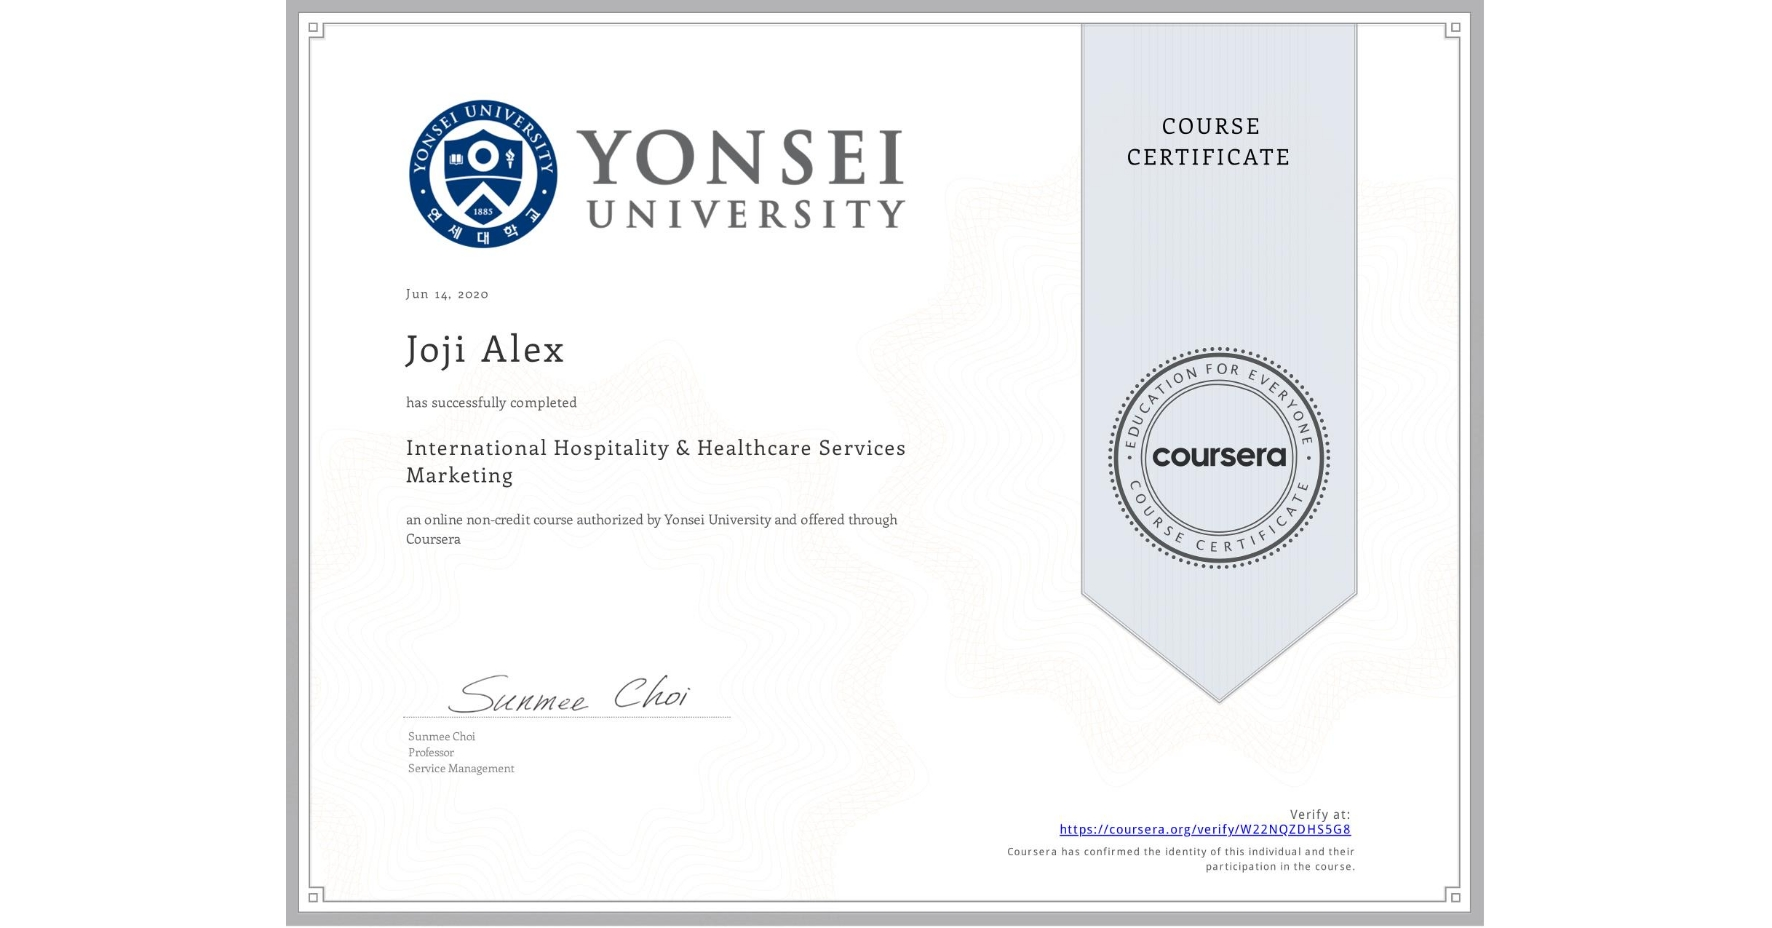 View certificate for Joji Alex, International Hospitality & Healthcare Services Marketing, an online non-credit course authorized by Yonsei University and offered through Coursera